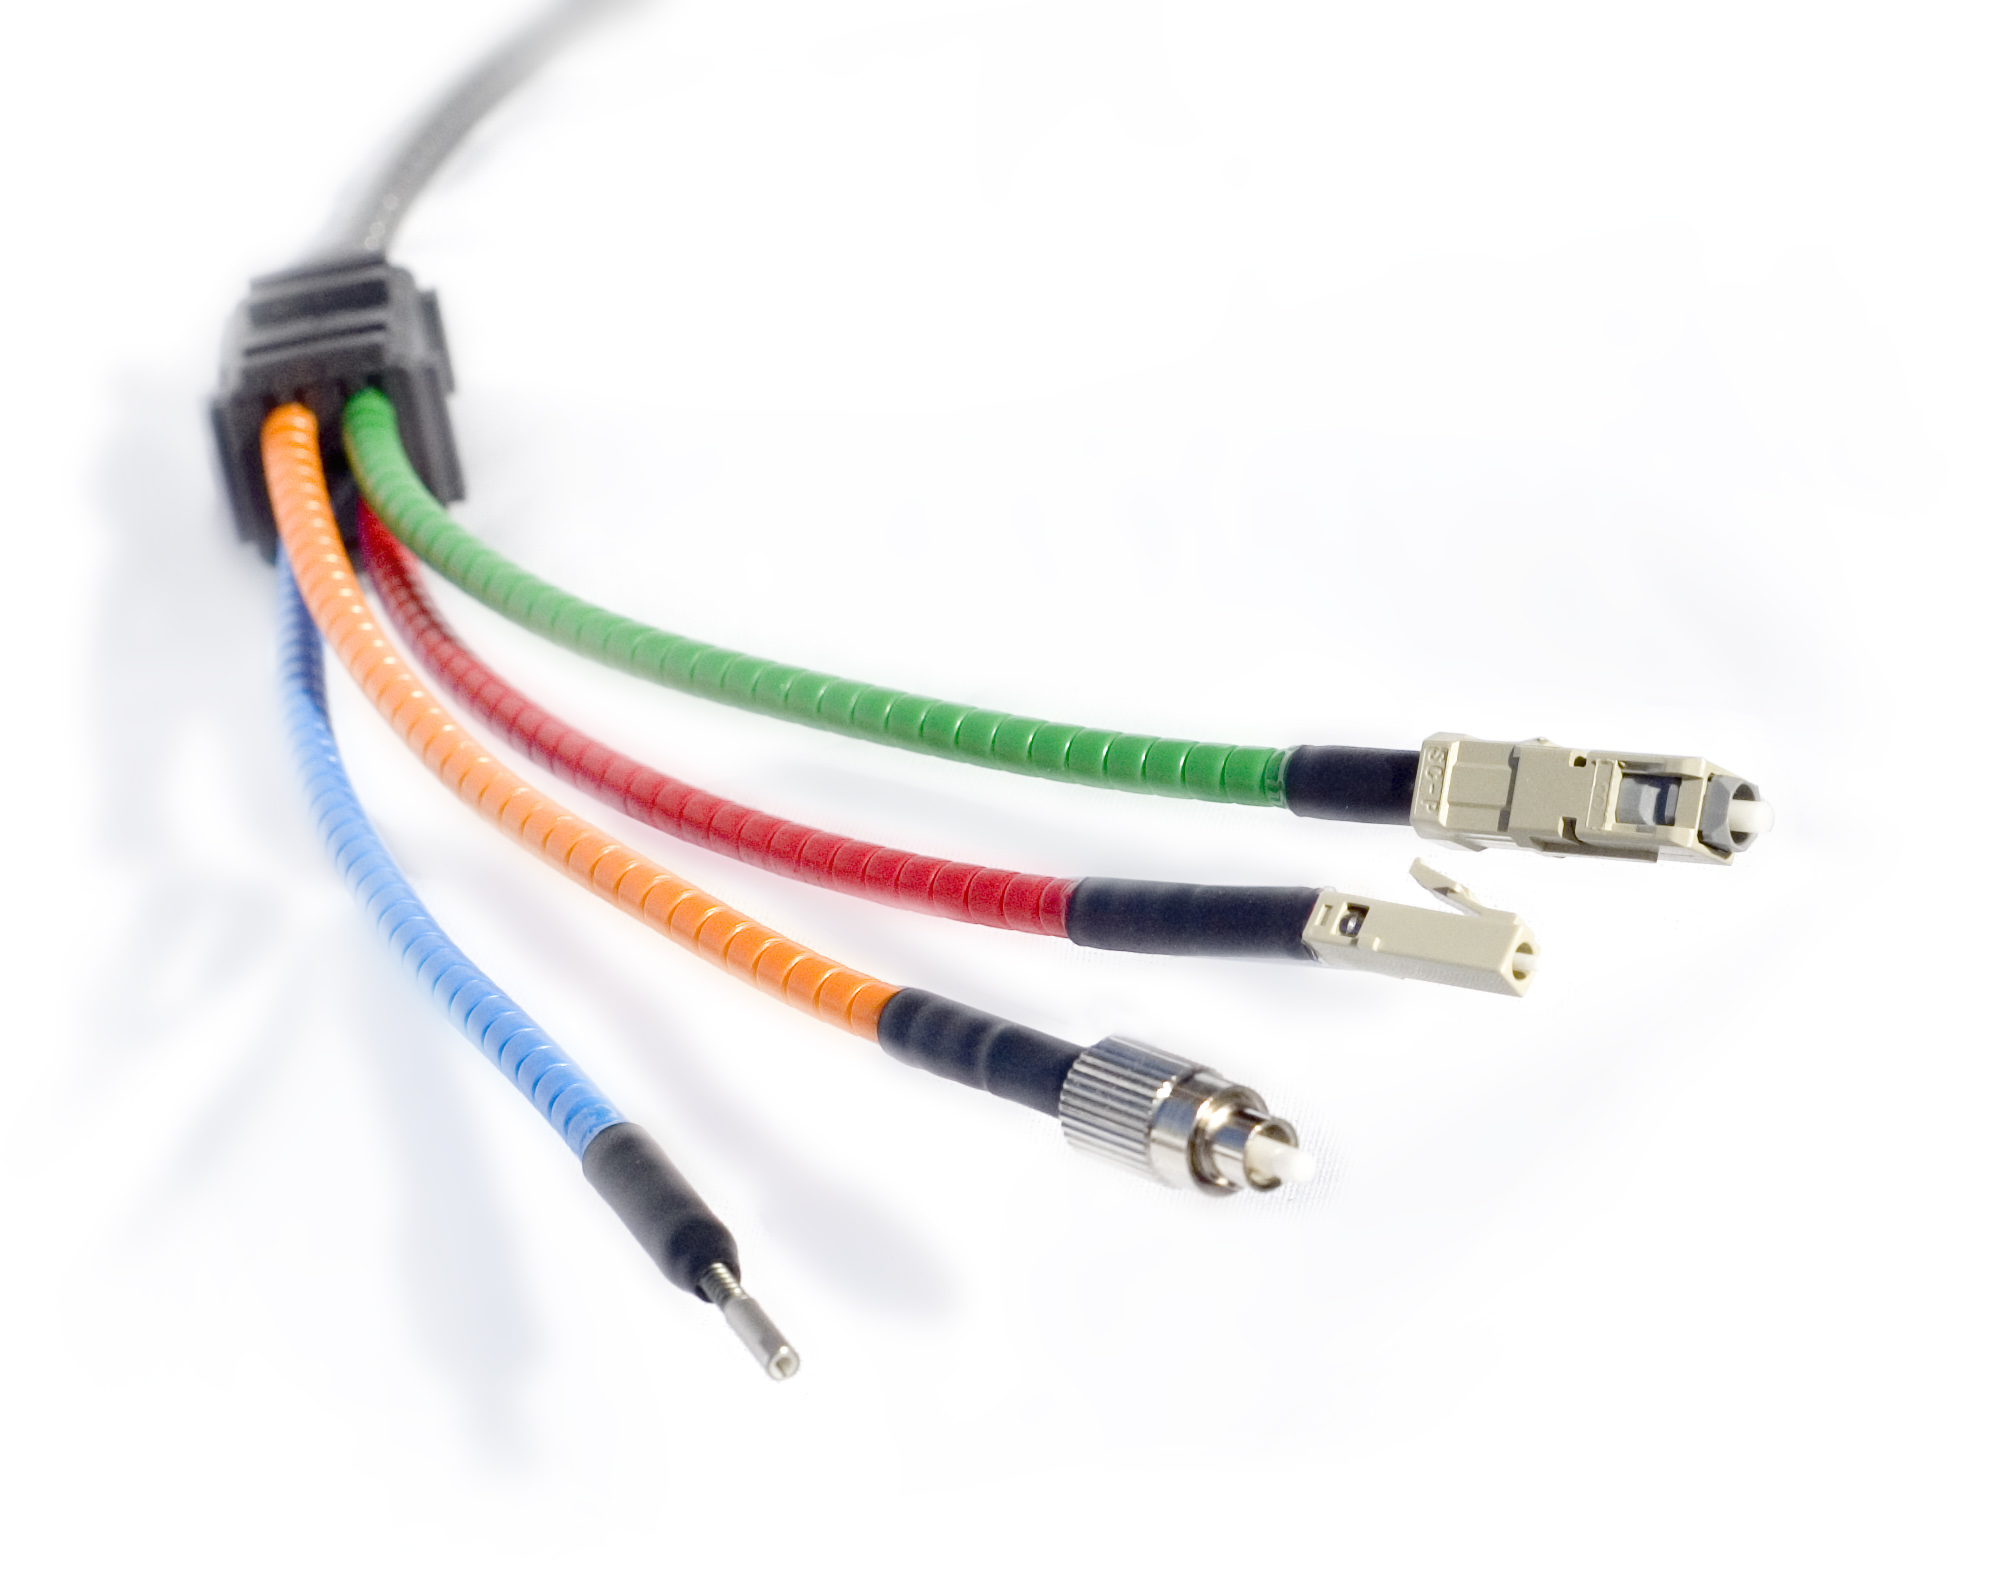 Google Buys Iprovo As Provo Ut Officially Becomes The Third Usb Wiring Connector Fiber City